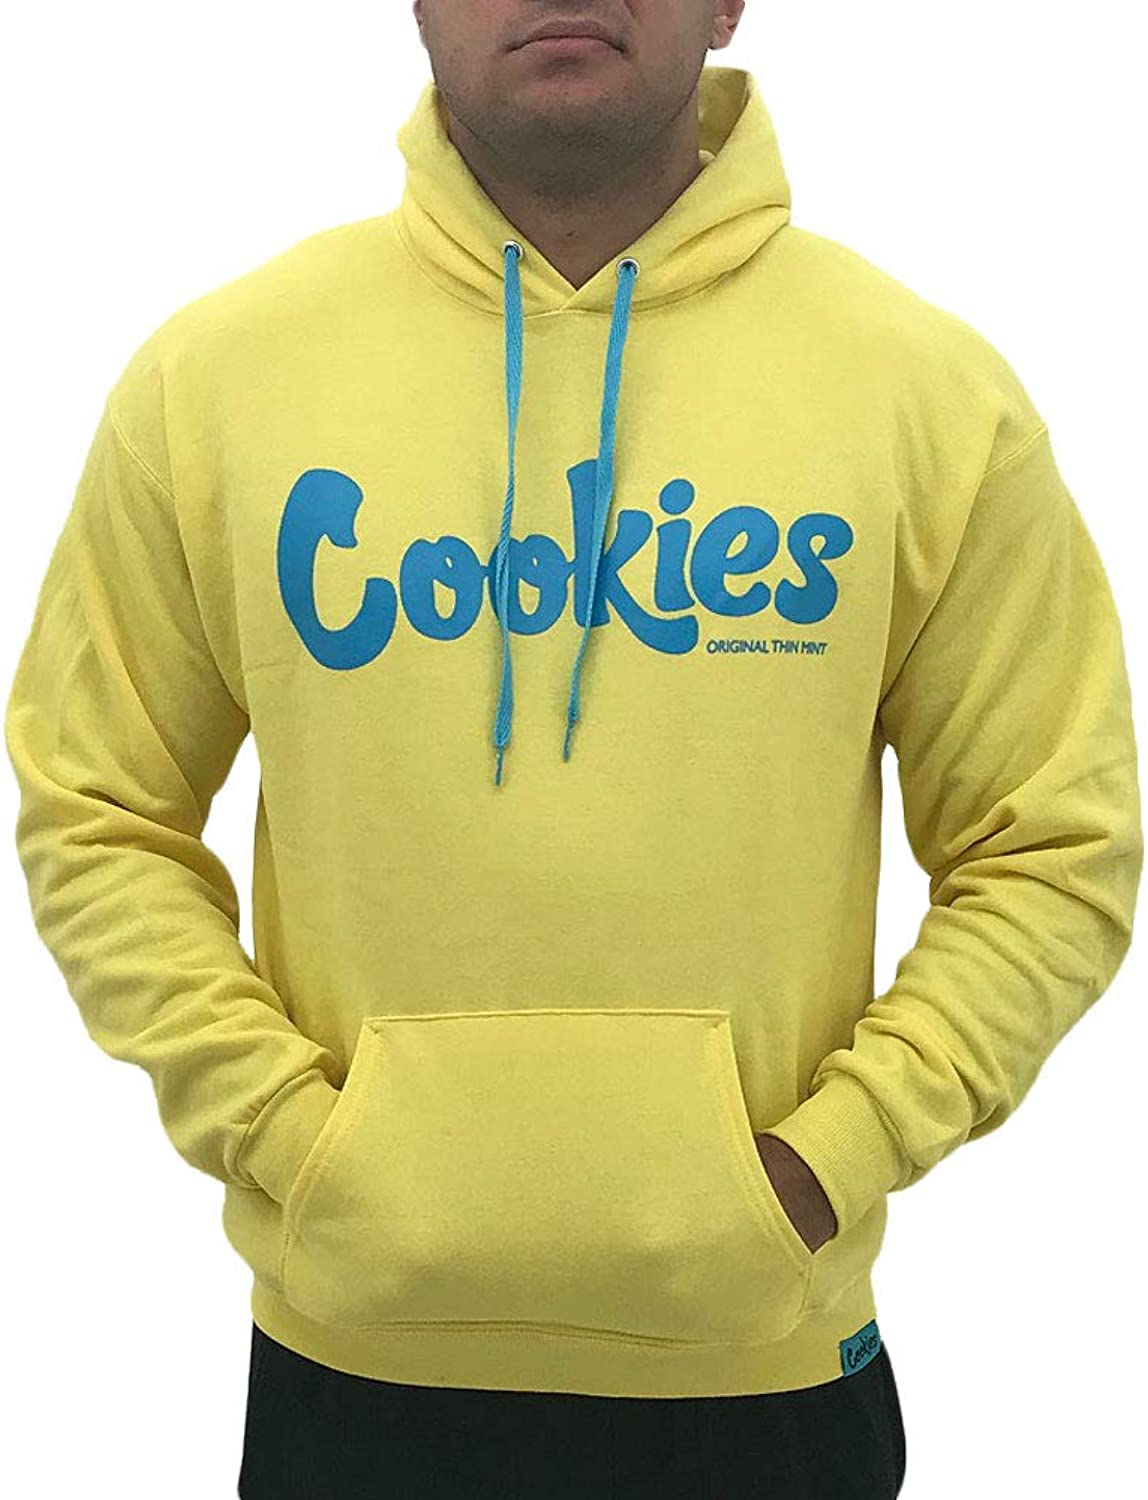 Cookies SF Berner Men's Thin Mint Fleece Long Sleeve Hoodie Gelb Blau